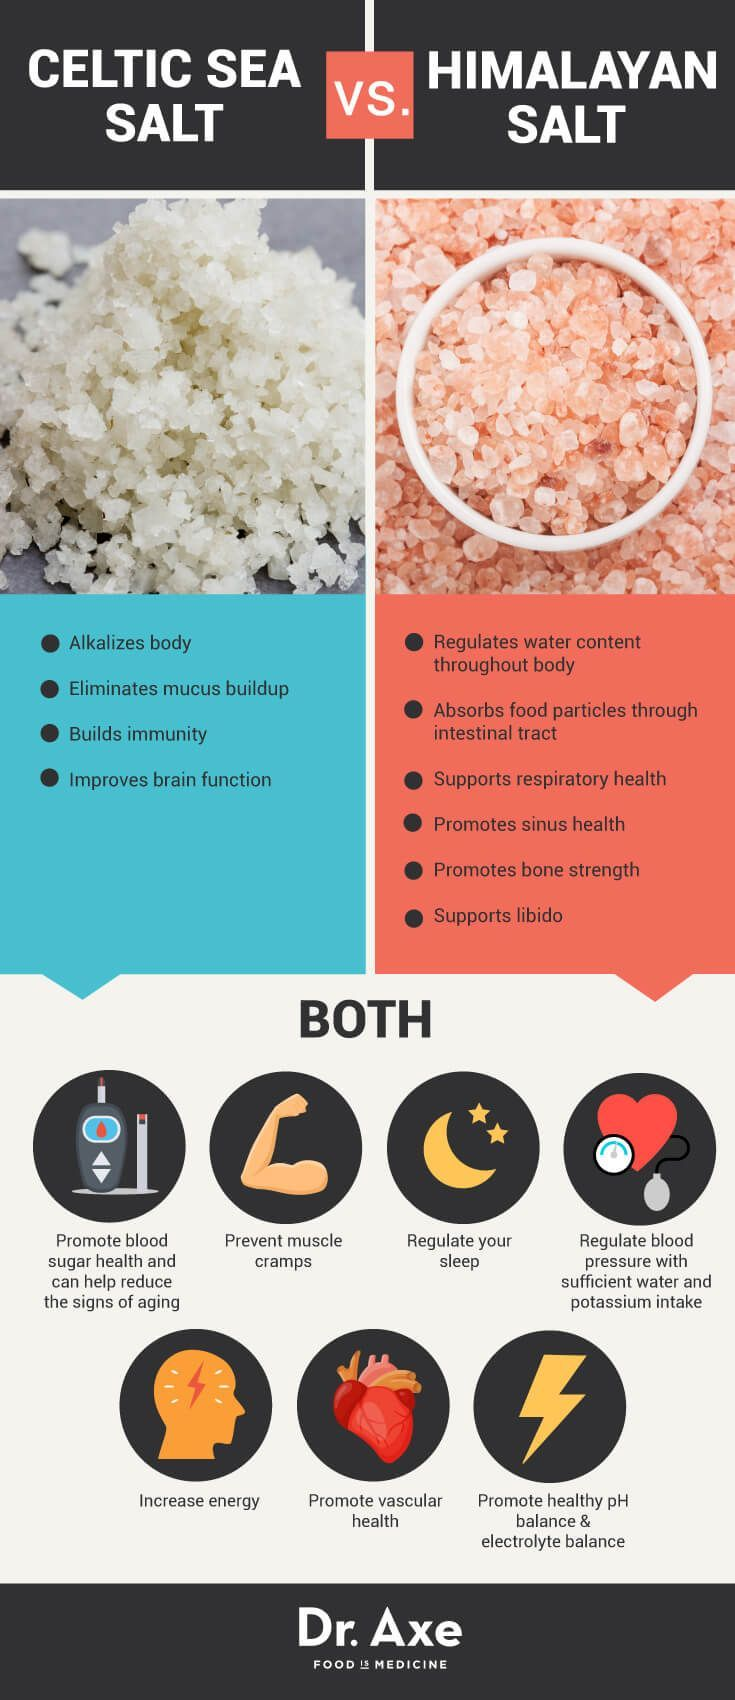 Sea salt vs. Himalayan salt - Dr. Axe Learn which salt suits you best and the benefits of each type. Check us out on: www.facebook.com/lifeacademyut www.twitter.com/lifeacademyut www.instagram.com/lifeacademyut